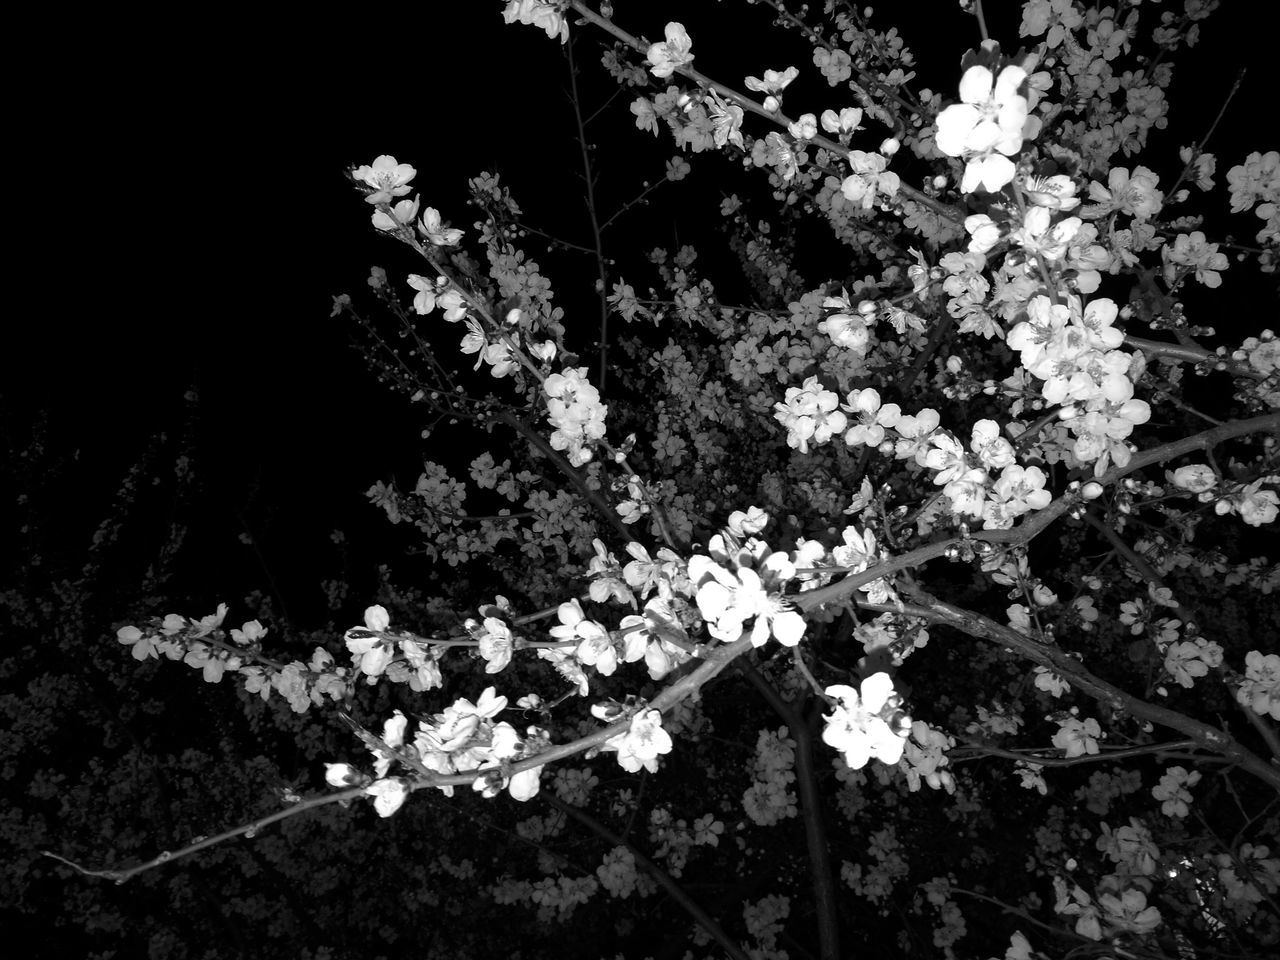 flower, blossom, growth, fragility, nature, beauty in nature, freshness, botany, petal, no people, white color, blooming, day, spring, outdoors, springtime, plant, branch, tree, flower head, close-up